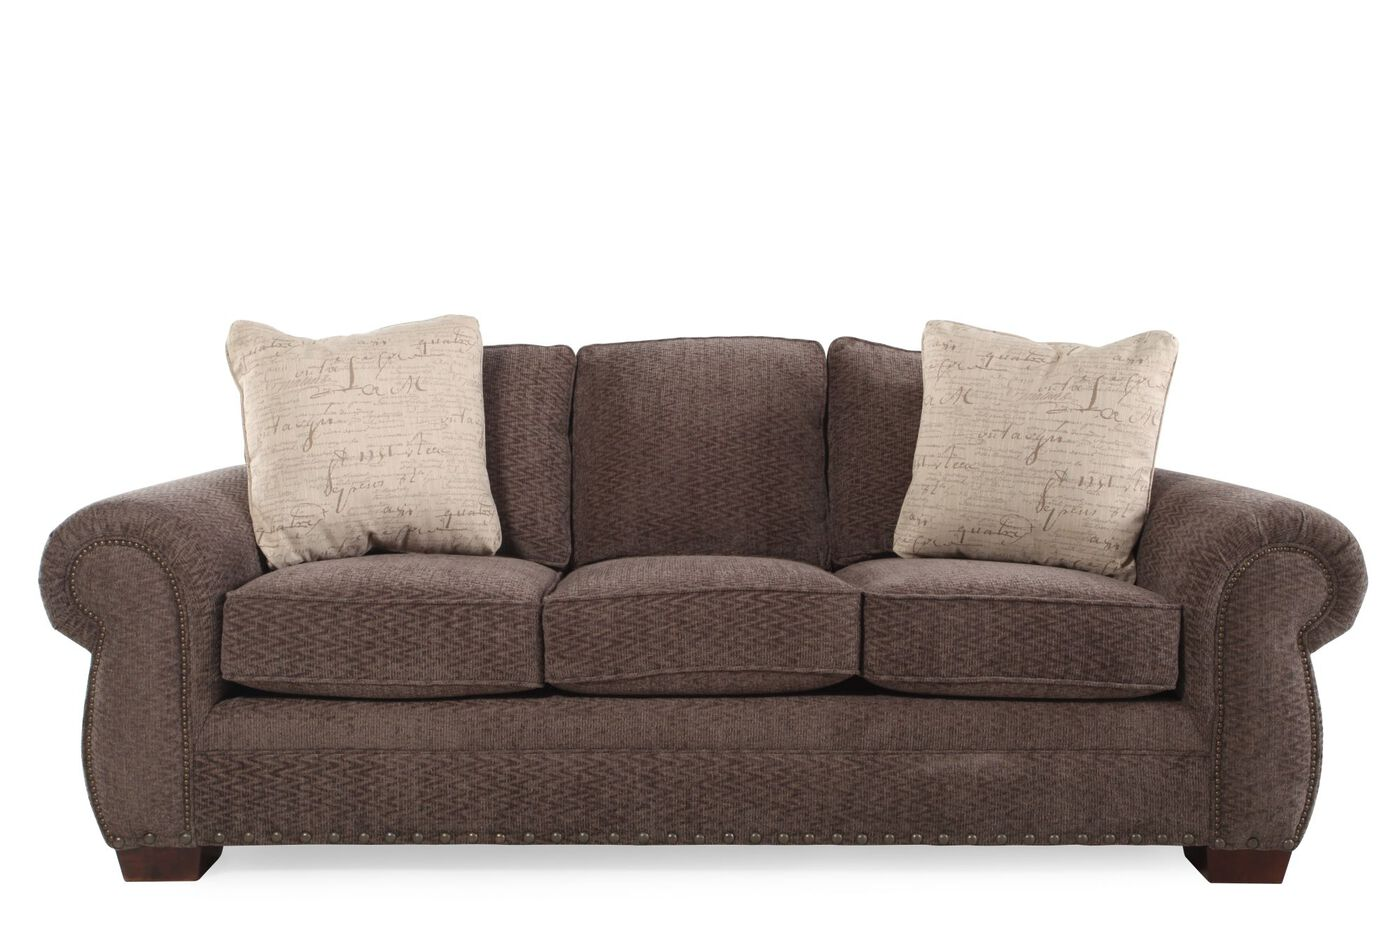 Broyhill cambridge chenille sofa mathis brothers furniture for Broyhill furniture